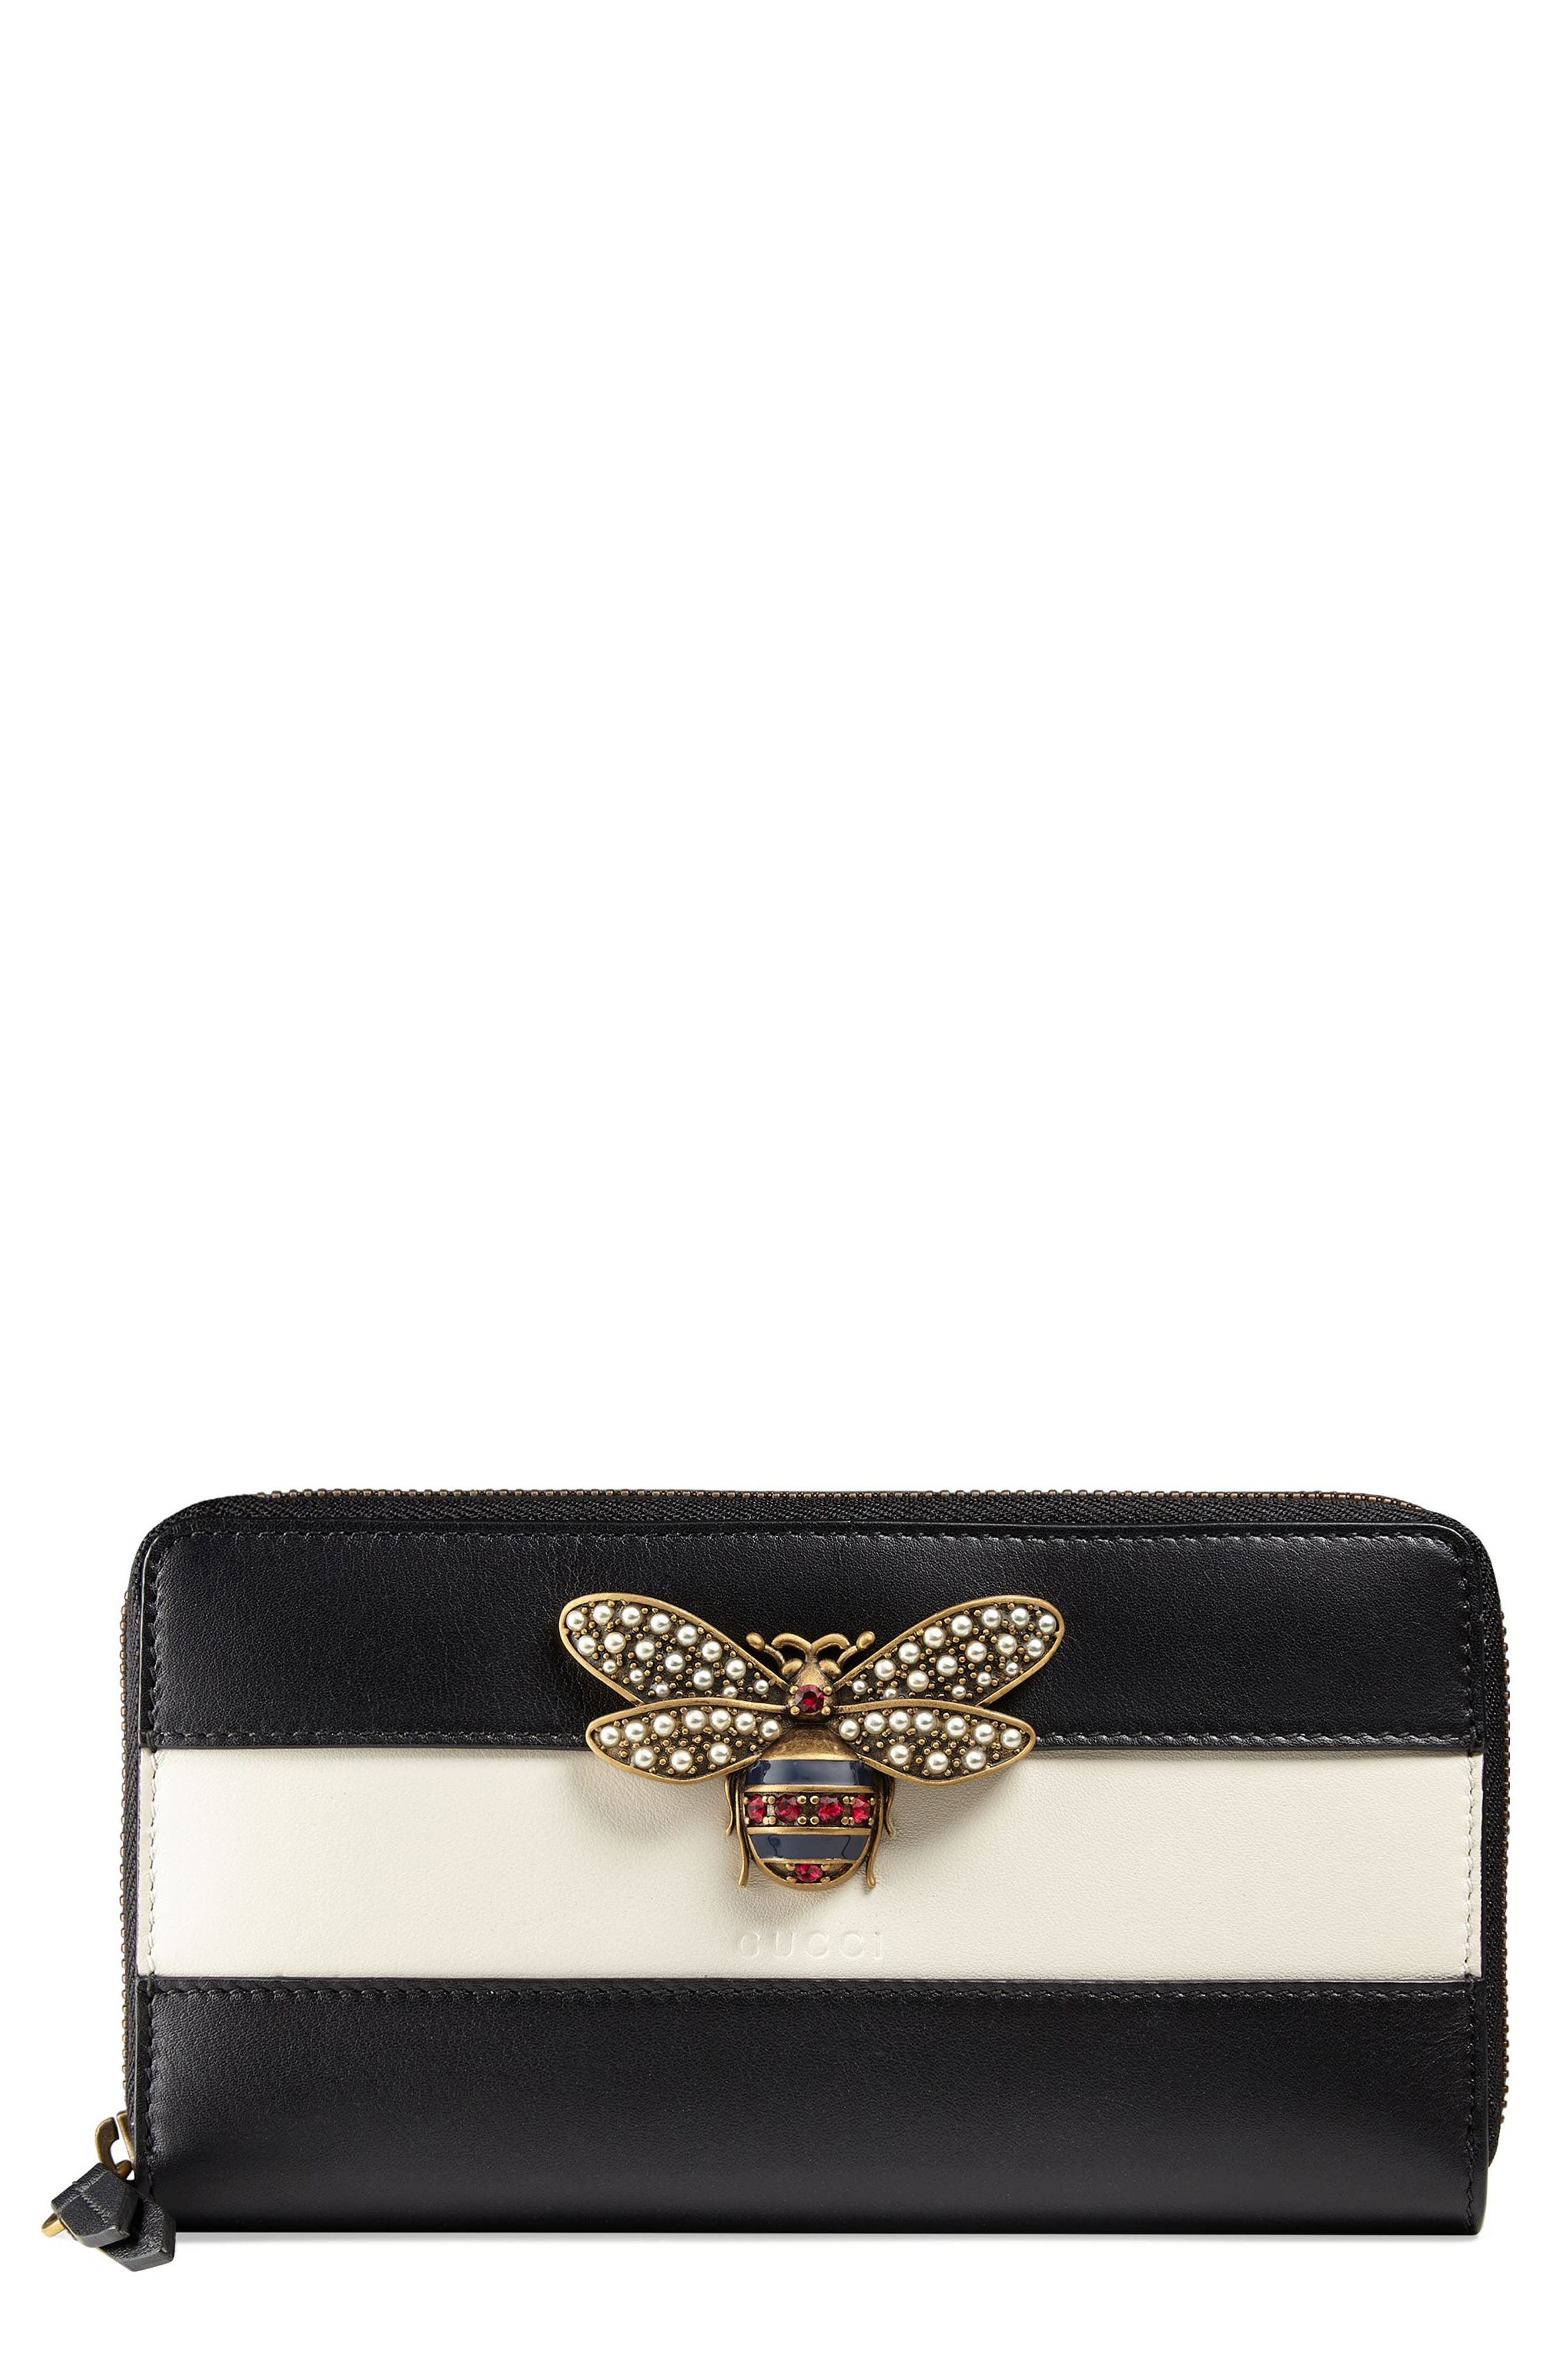 Main Image - Gucci Bee Leather Zip-Around Wallet